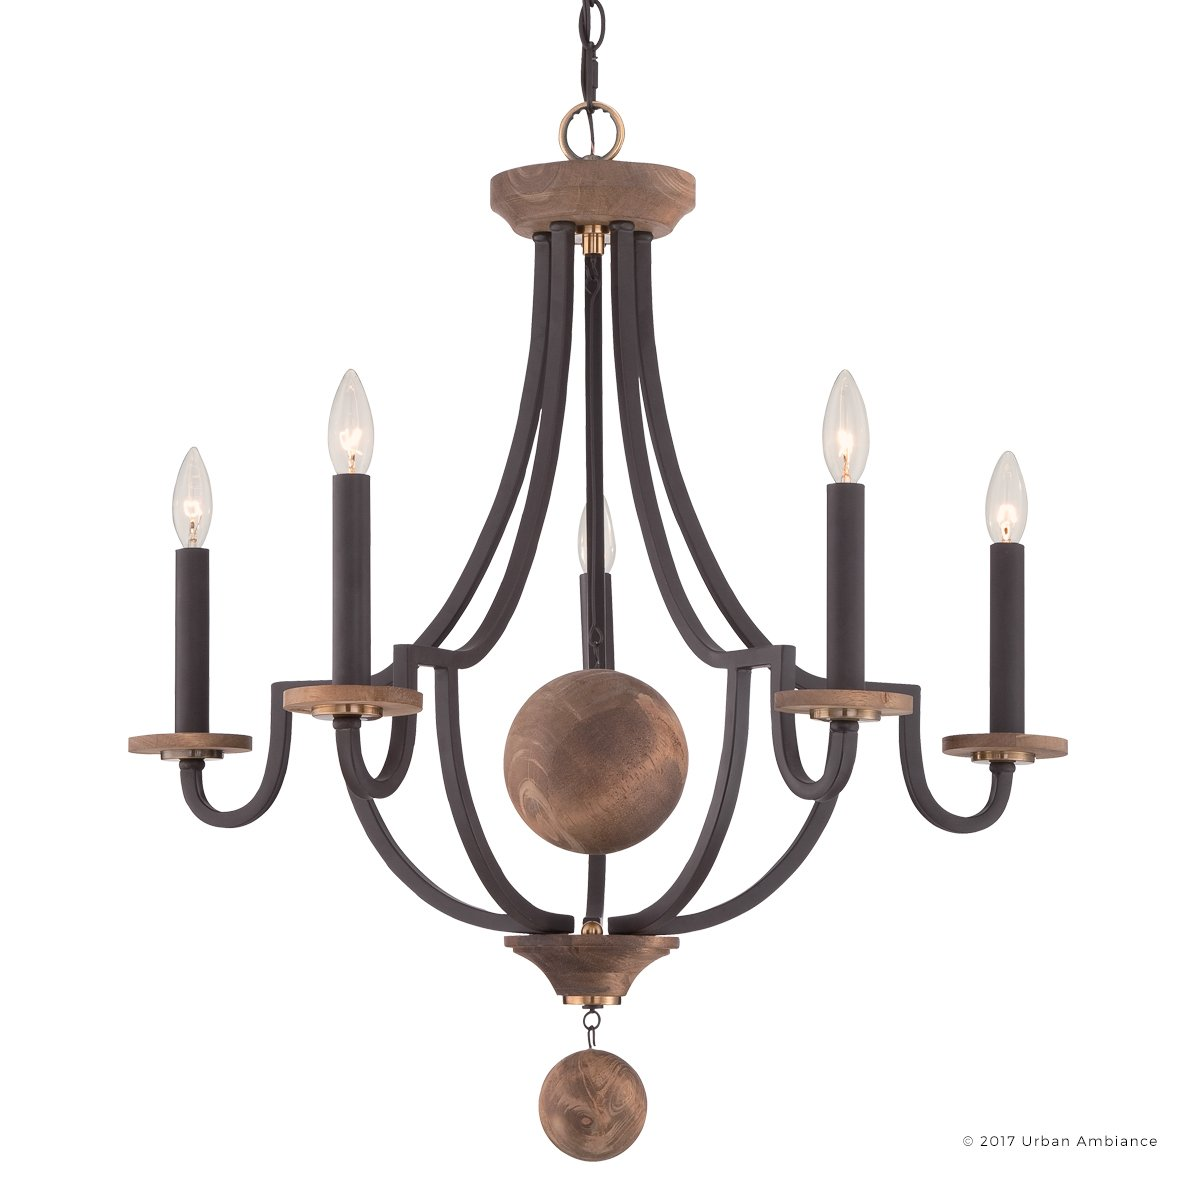 Luxury Transitional Chandelier, Medium Size: 30''H x 28''W, with Rustic Style Elements, Natural Wood Spheres and Antique Brass Accents, Estate Bronze Finish and Exposed Bulbs, UQL2730 by Urban Ambiance